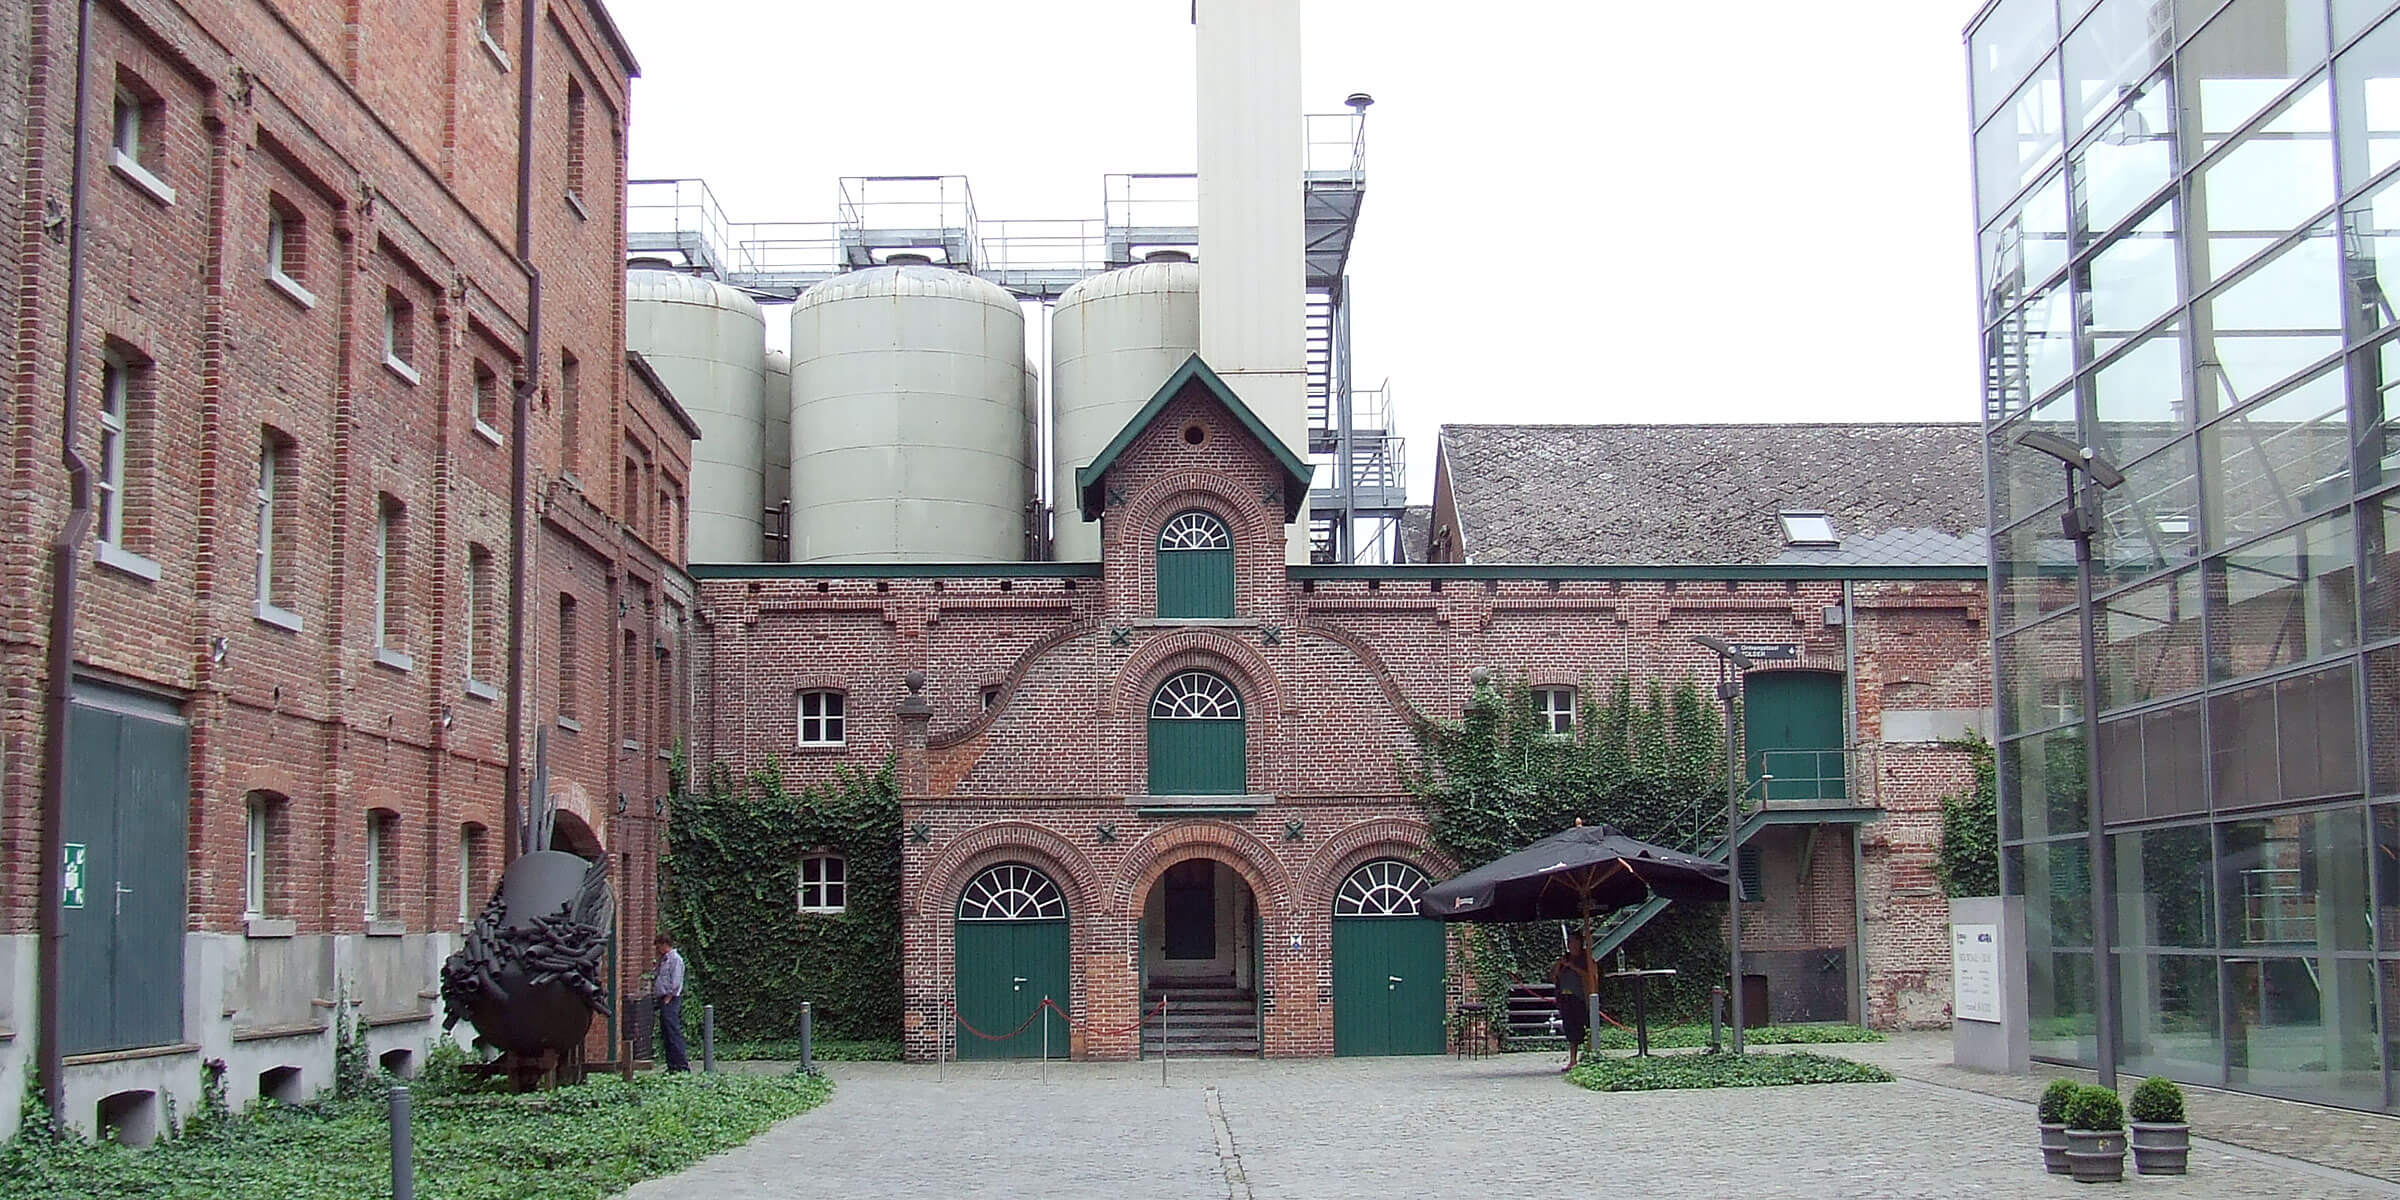 Outside the Brouwerij Rodenbach in Roeselare, Belgium